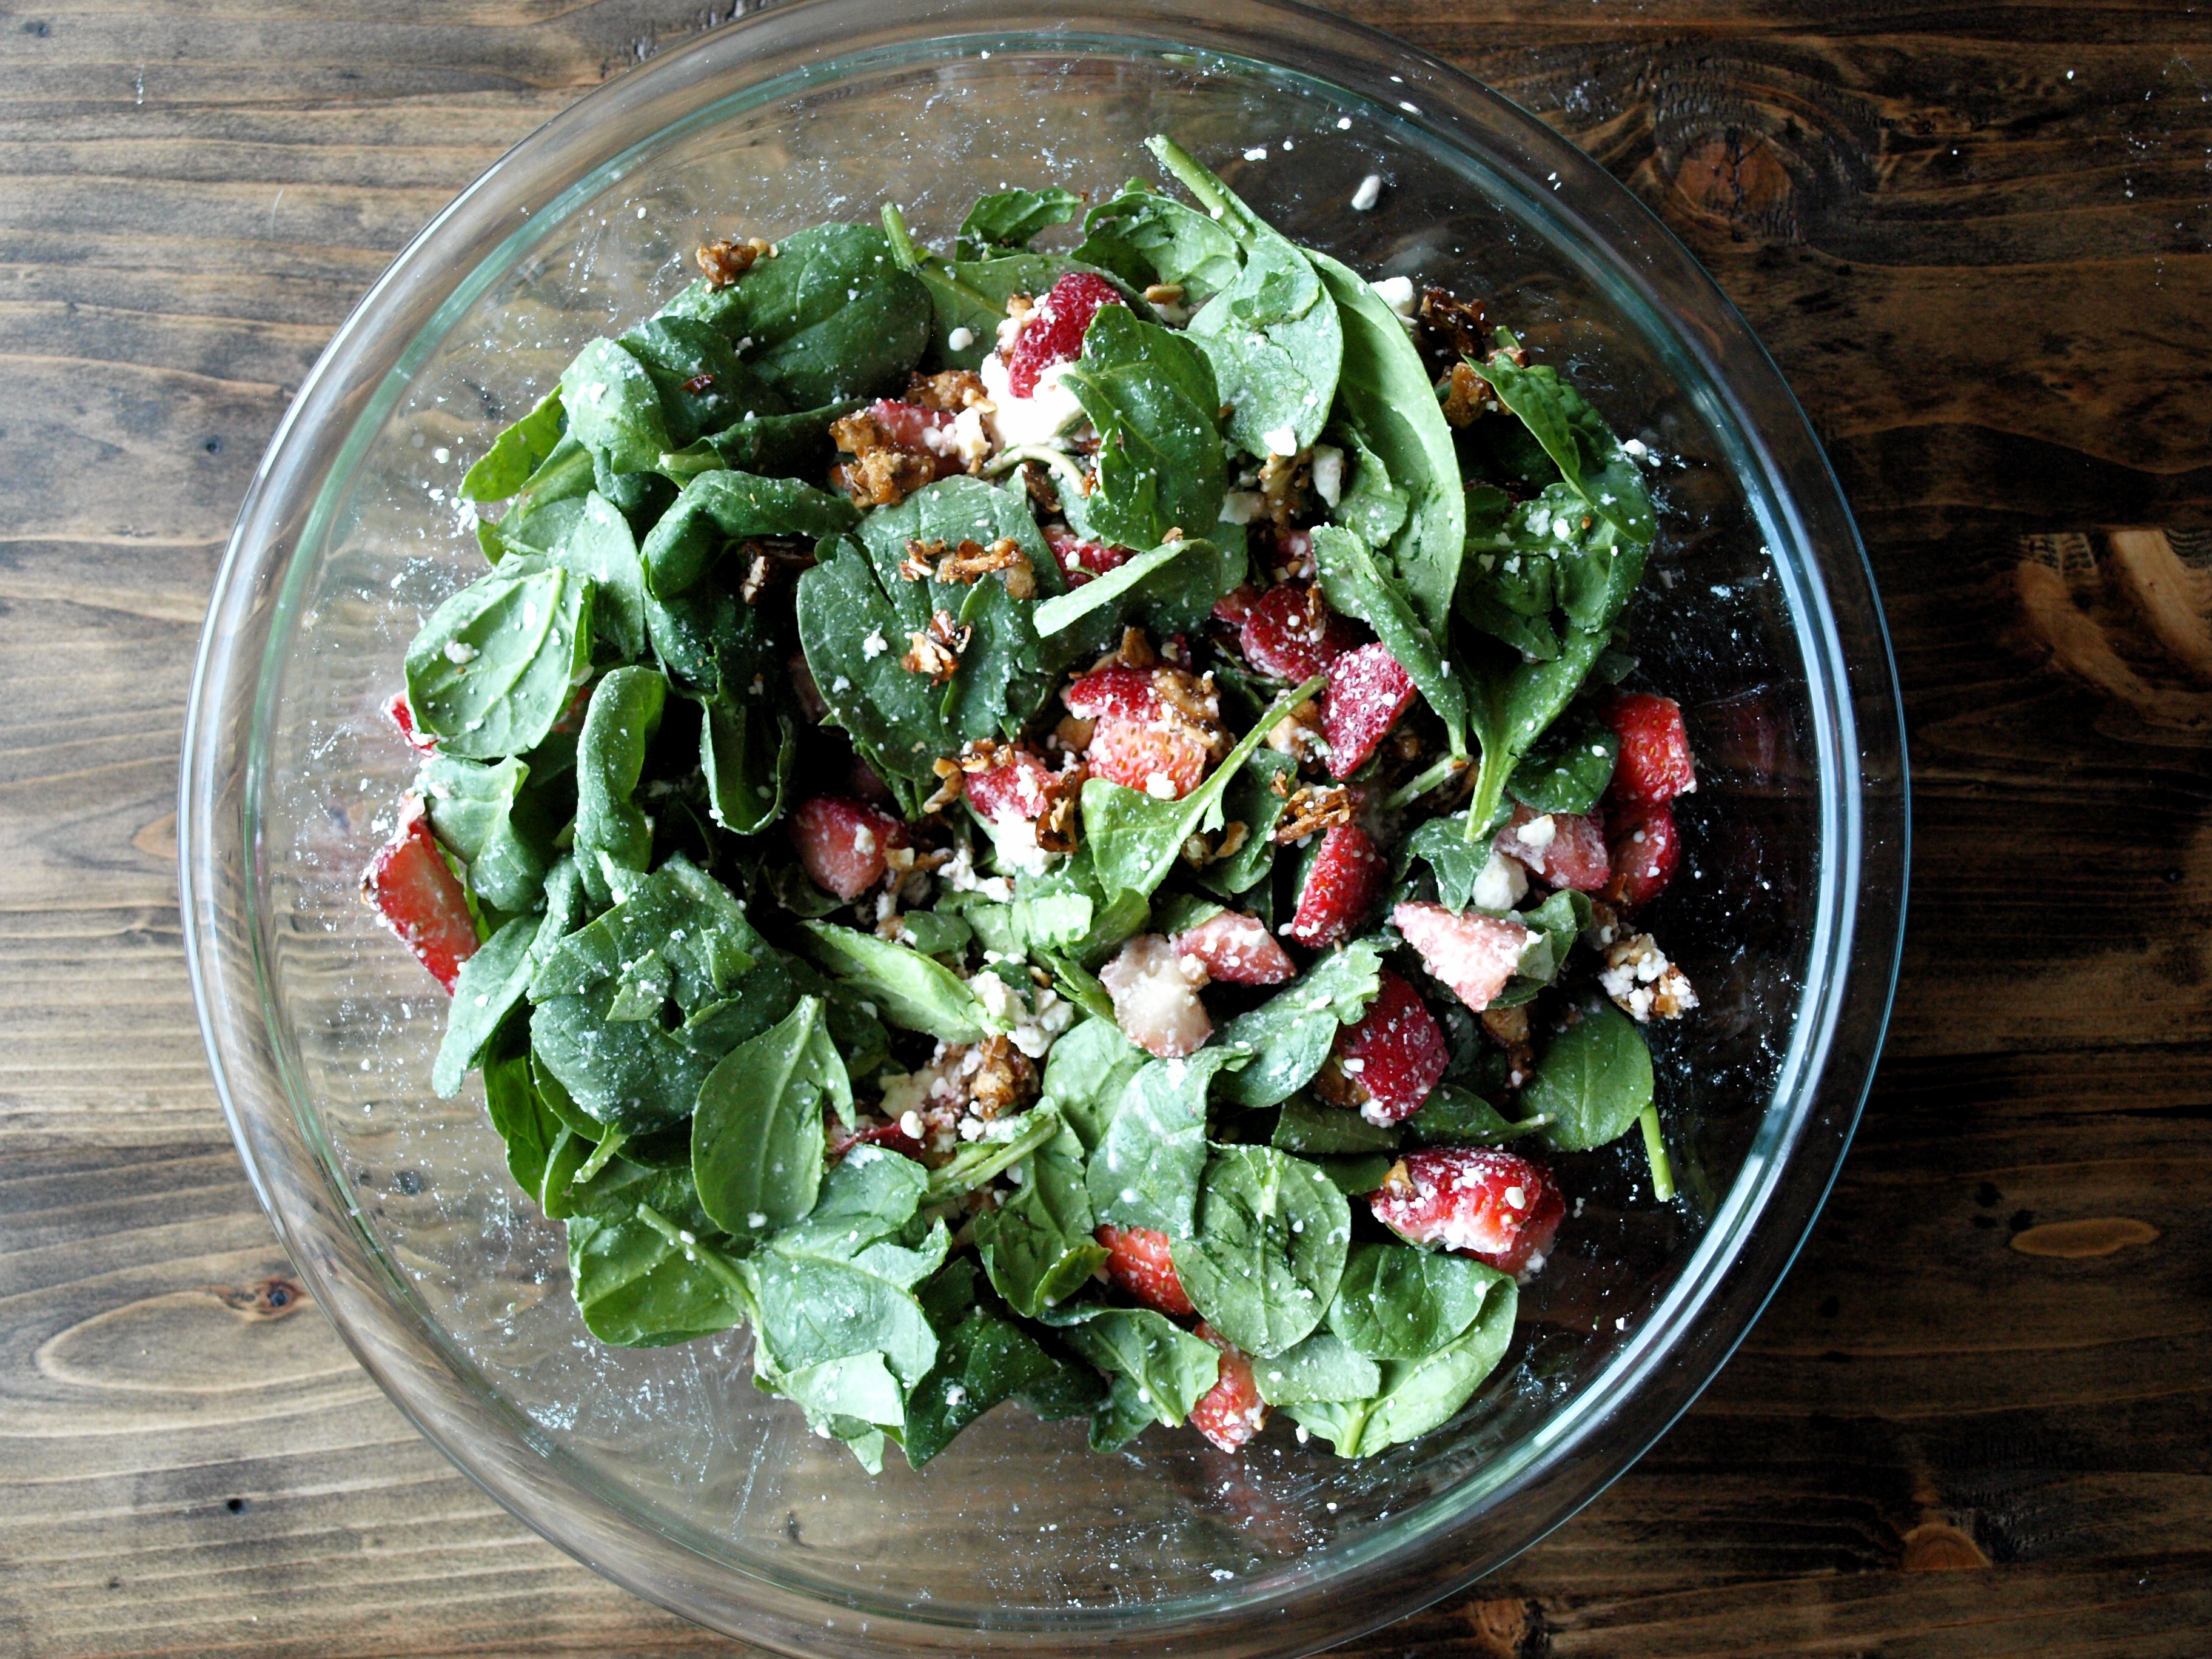 Candied almond strawberry spinach salad